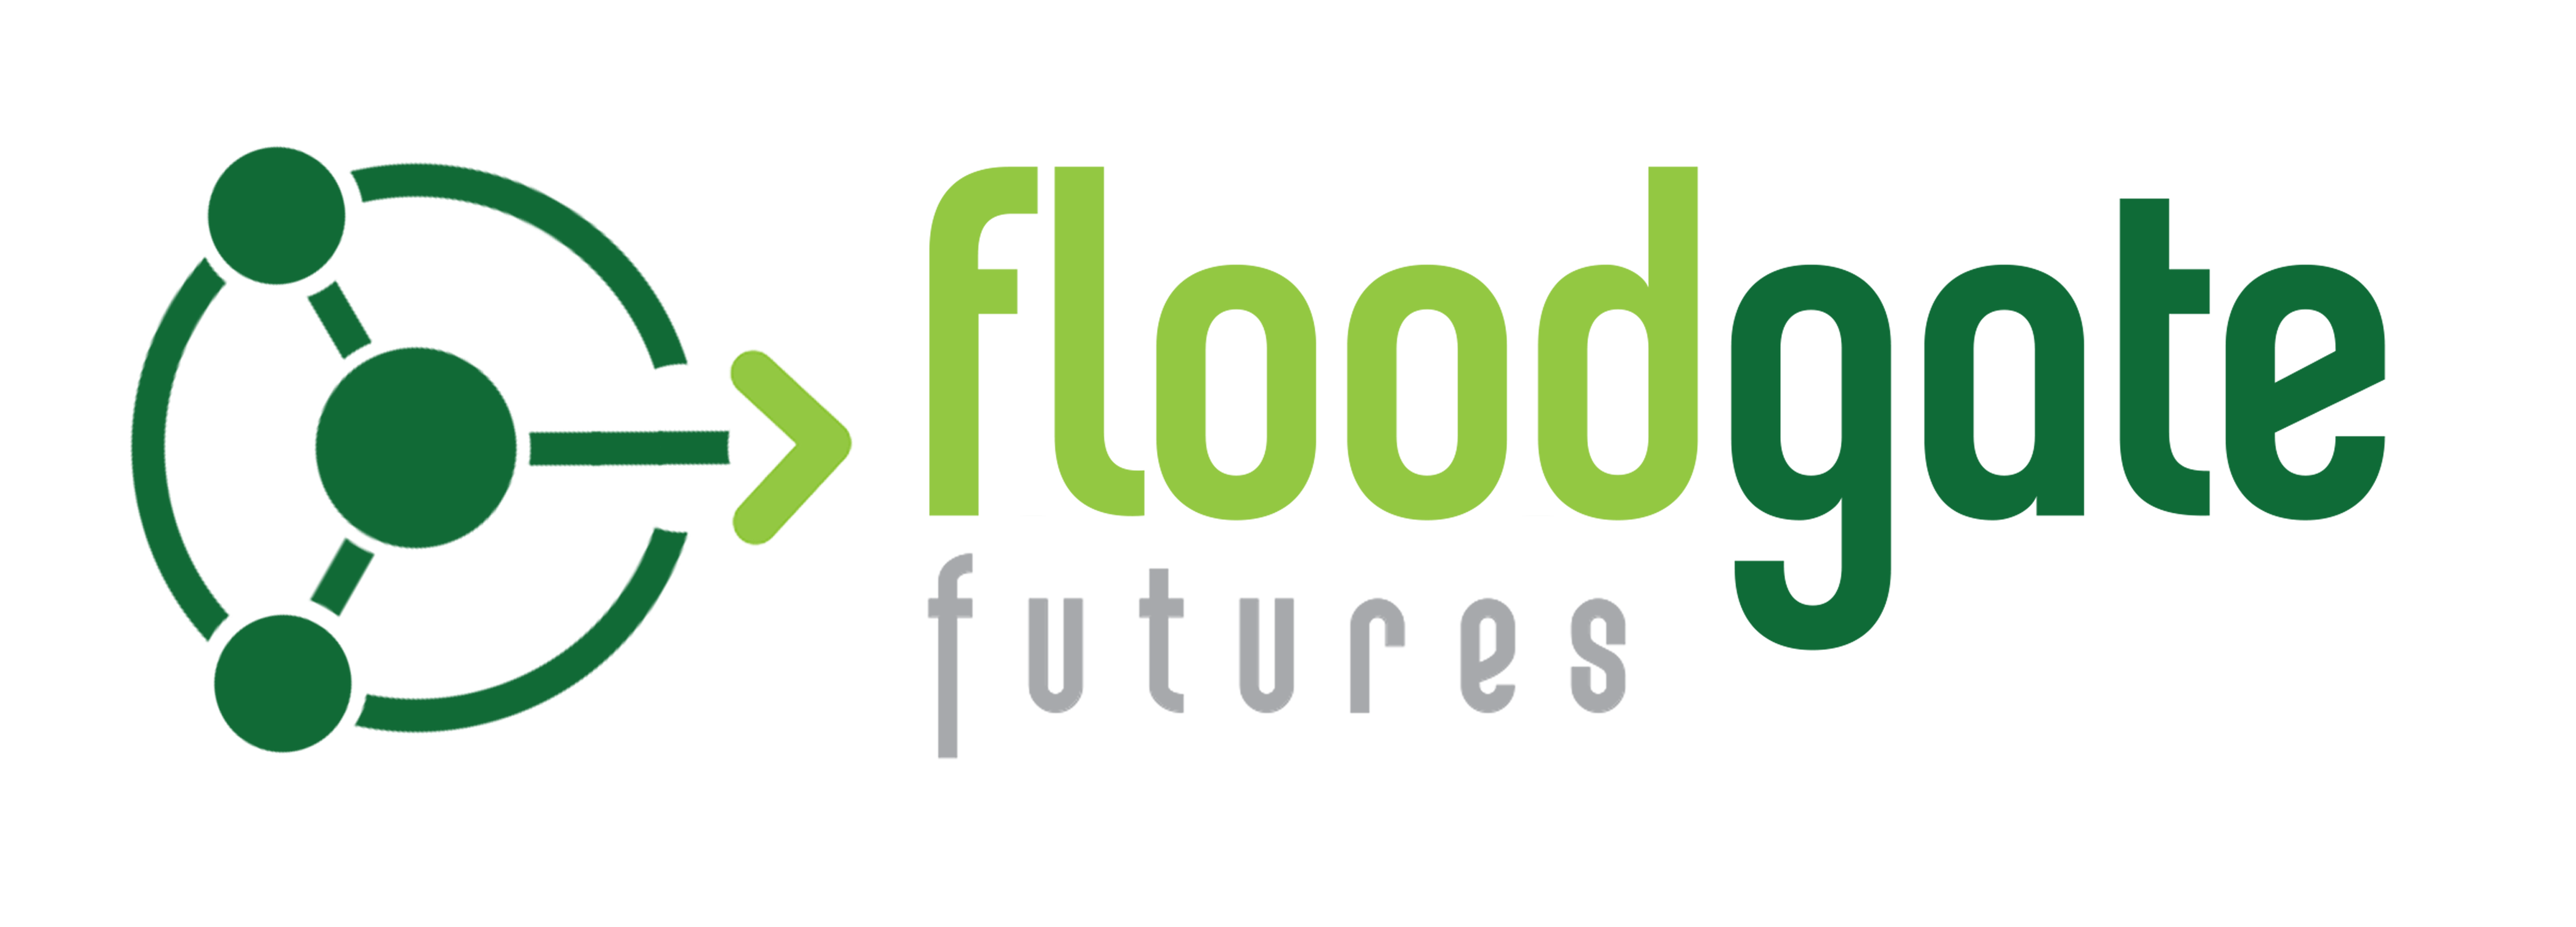 FloodGate Medical Launches New Career Transitions Program for the Medical Device Industry, FloodGate Futures